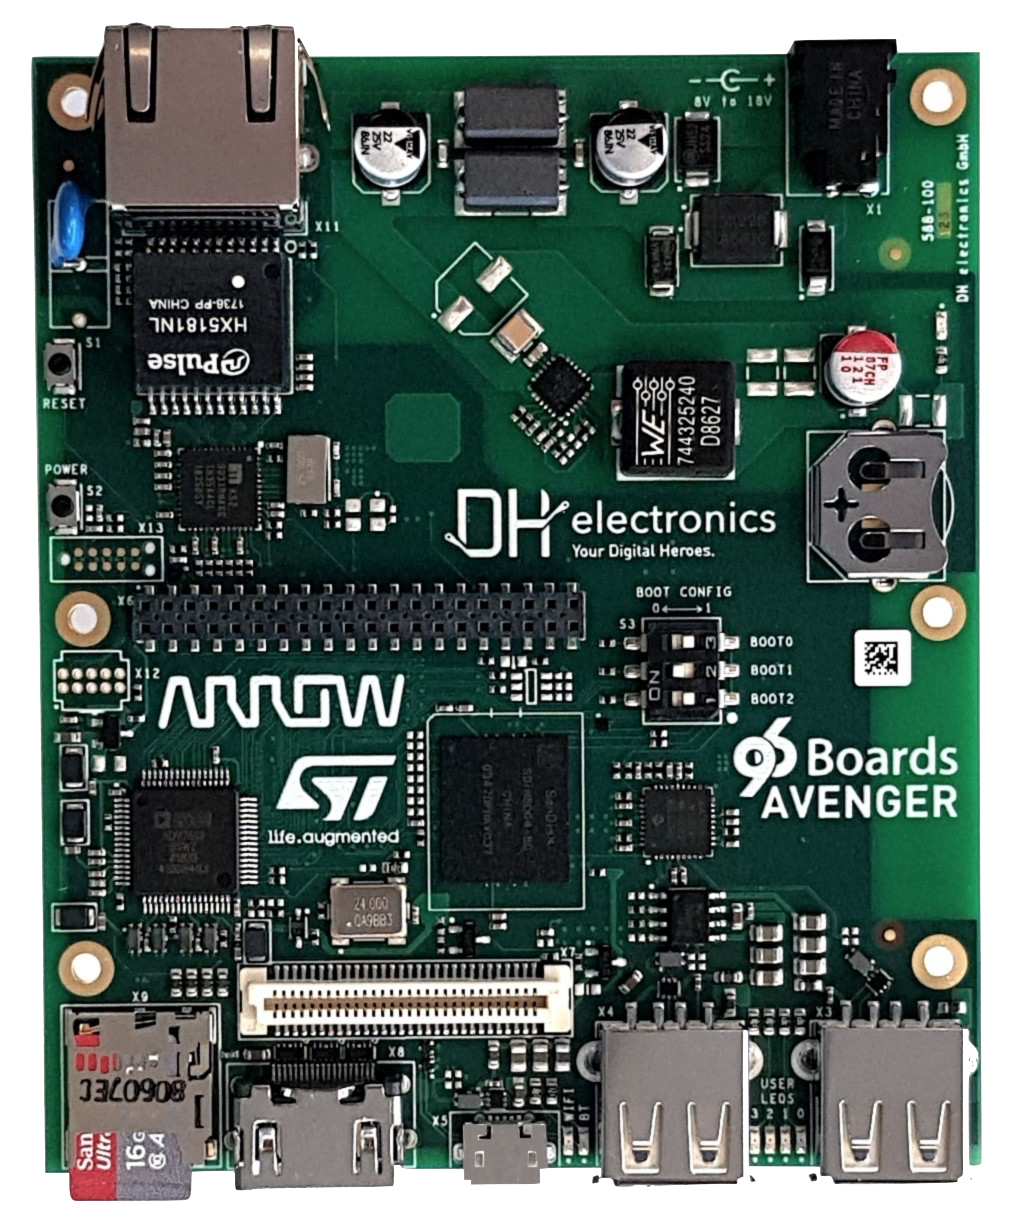 96Boards - Develop & Prototype on the Latest Arm Technology